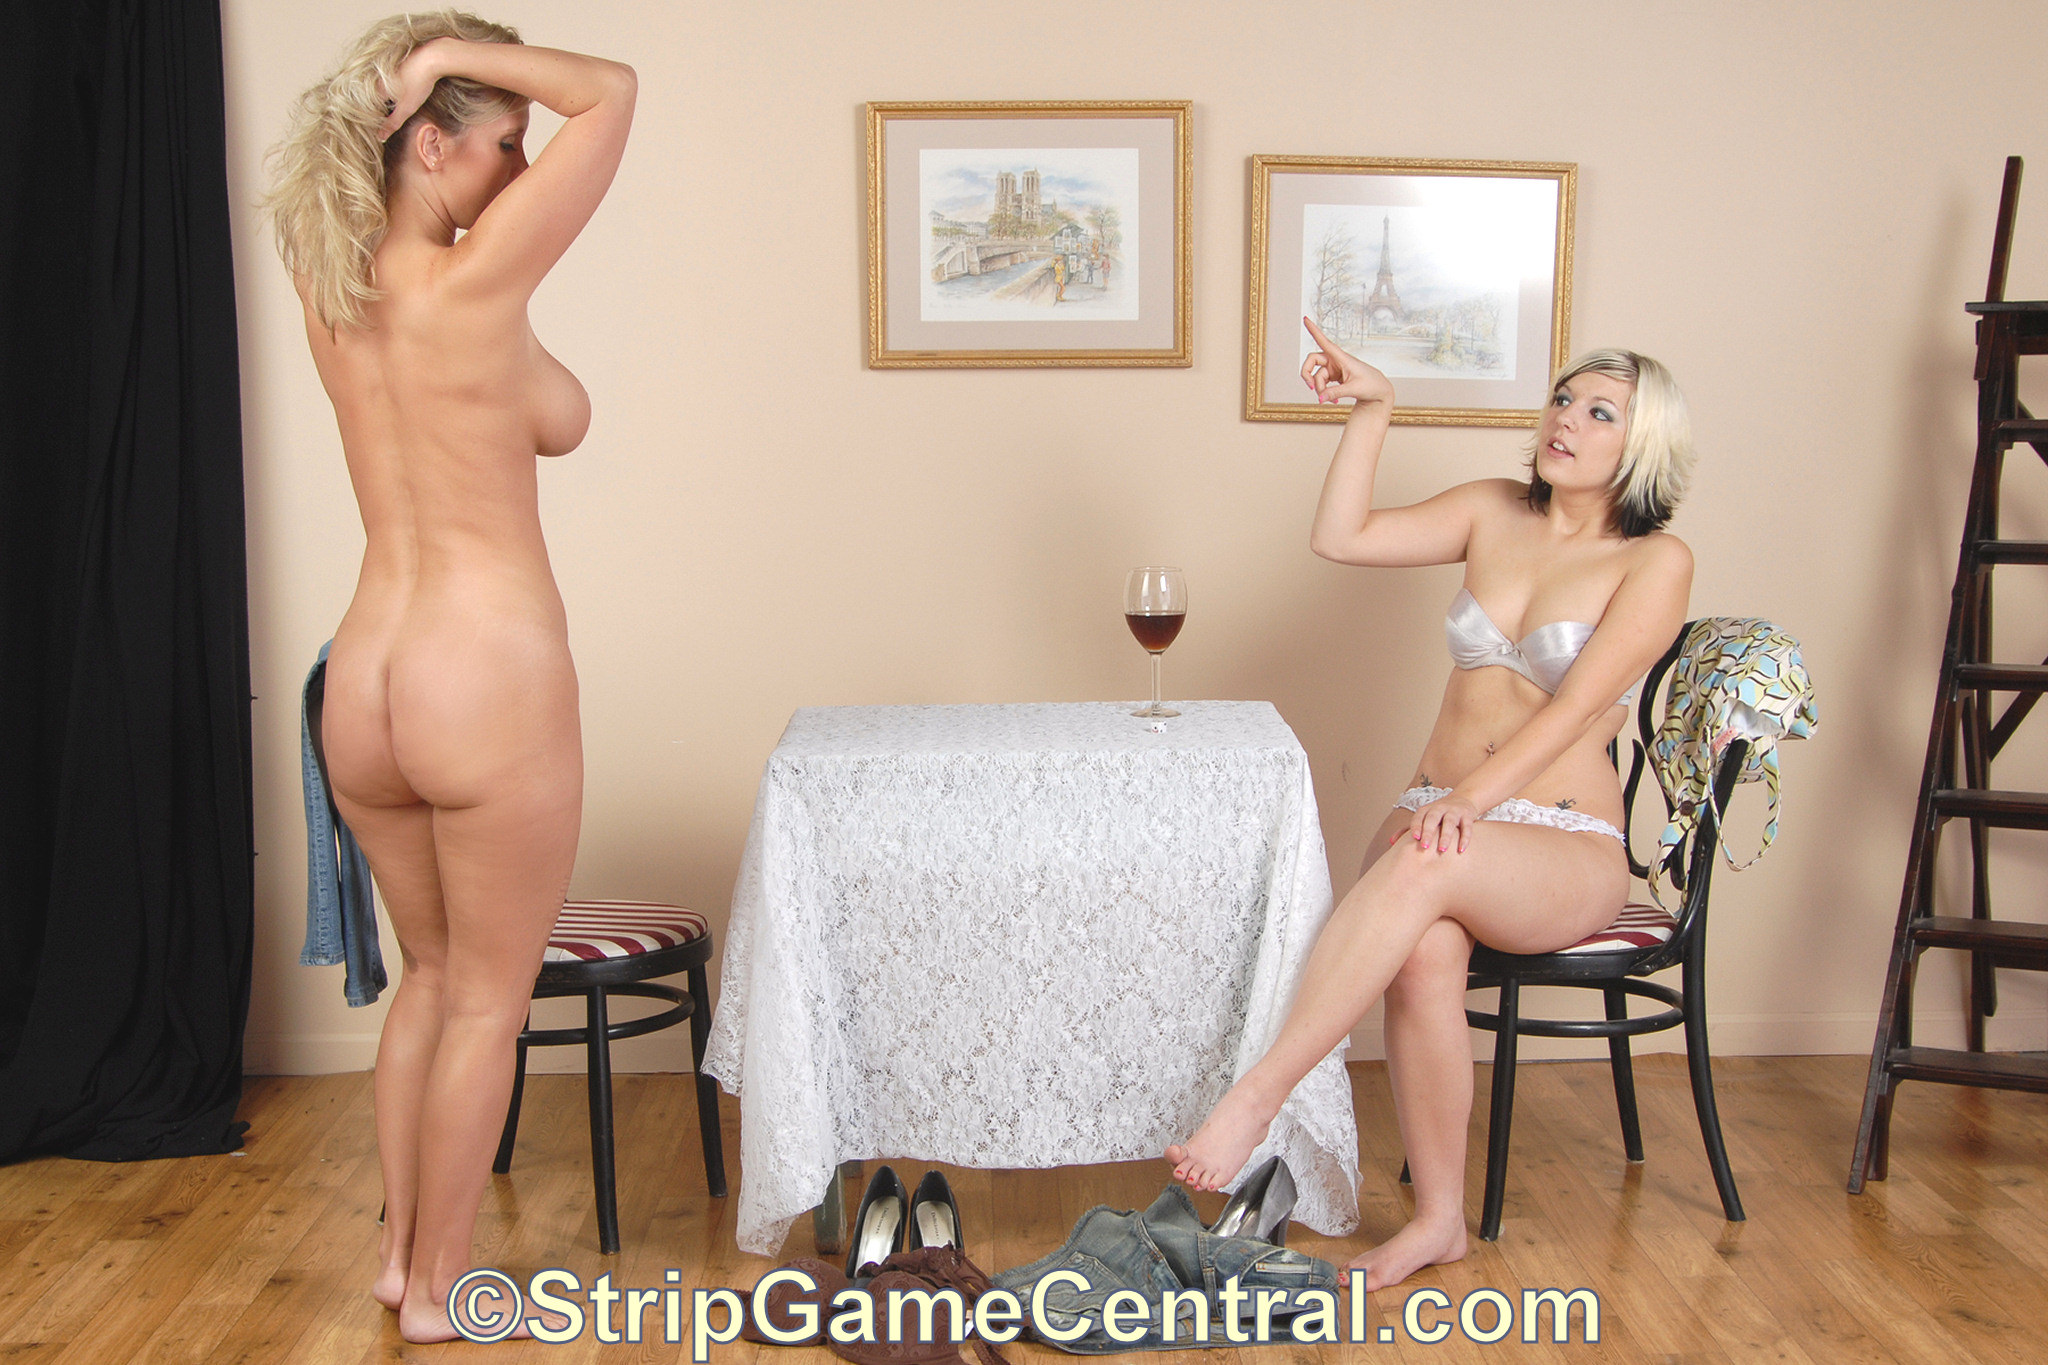 from Derrick naked woman in games